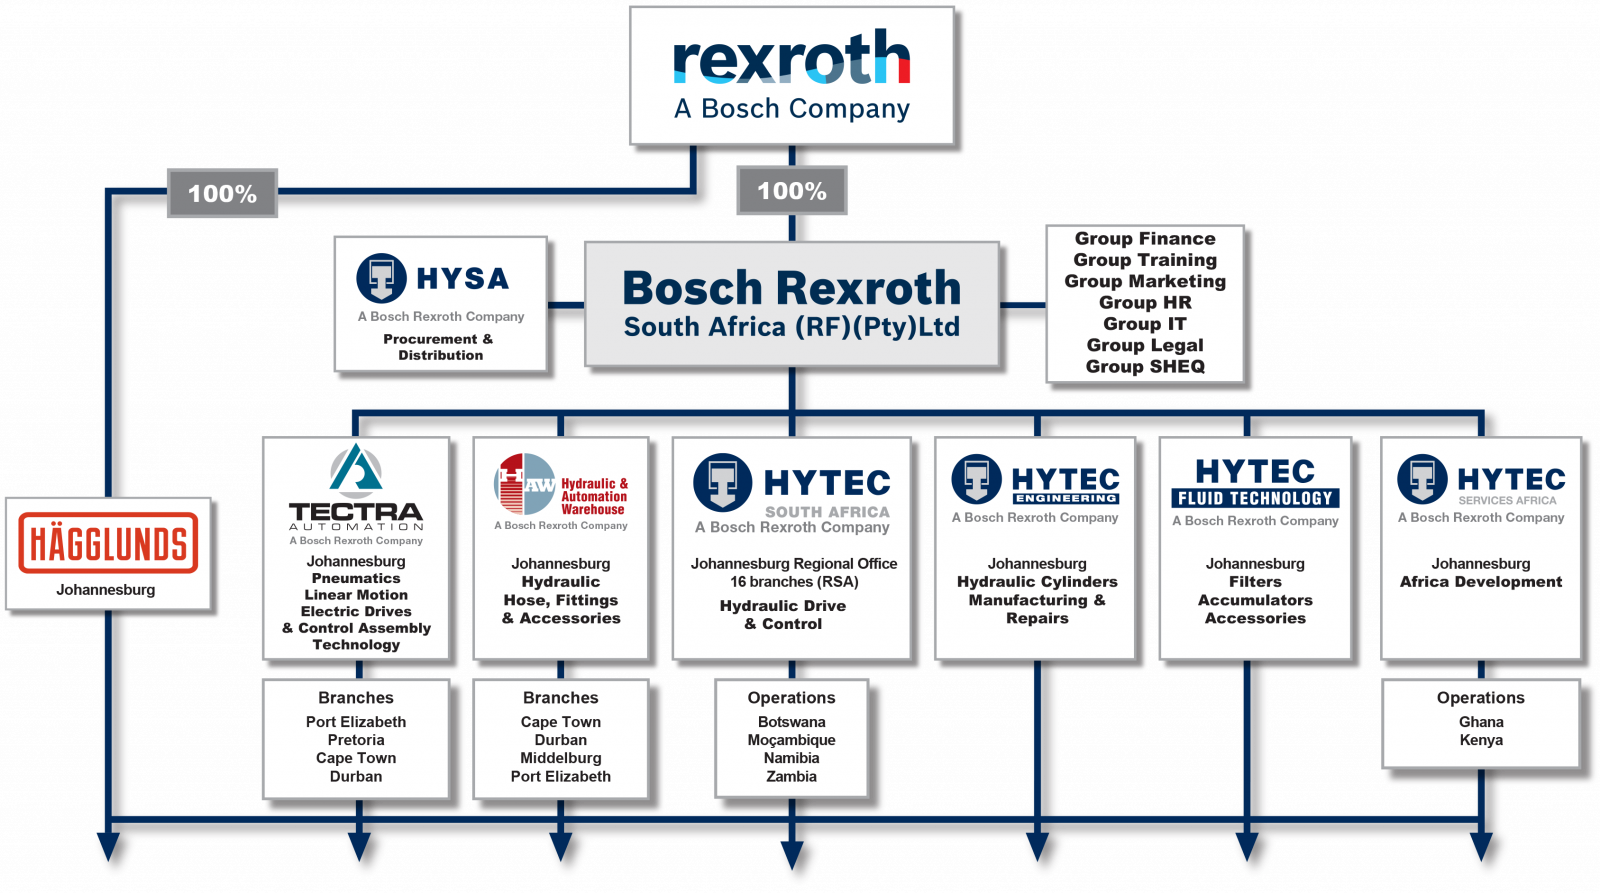 Bosch Rexroth South Africa Group - Code of Ethics and